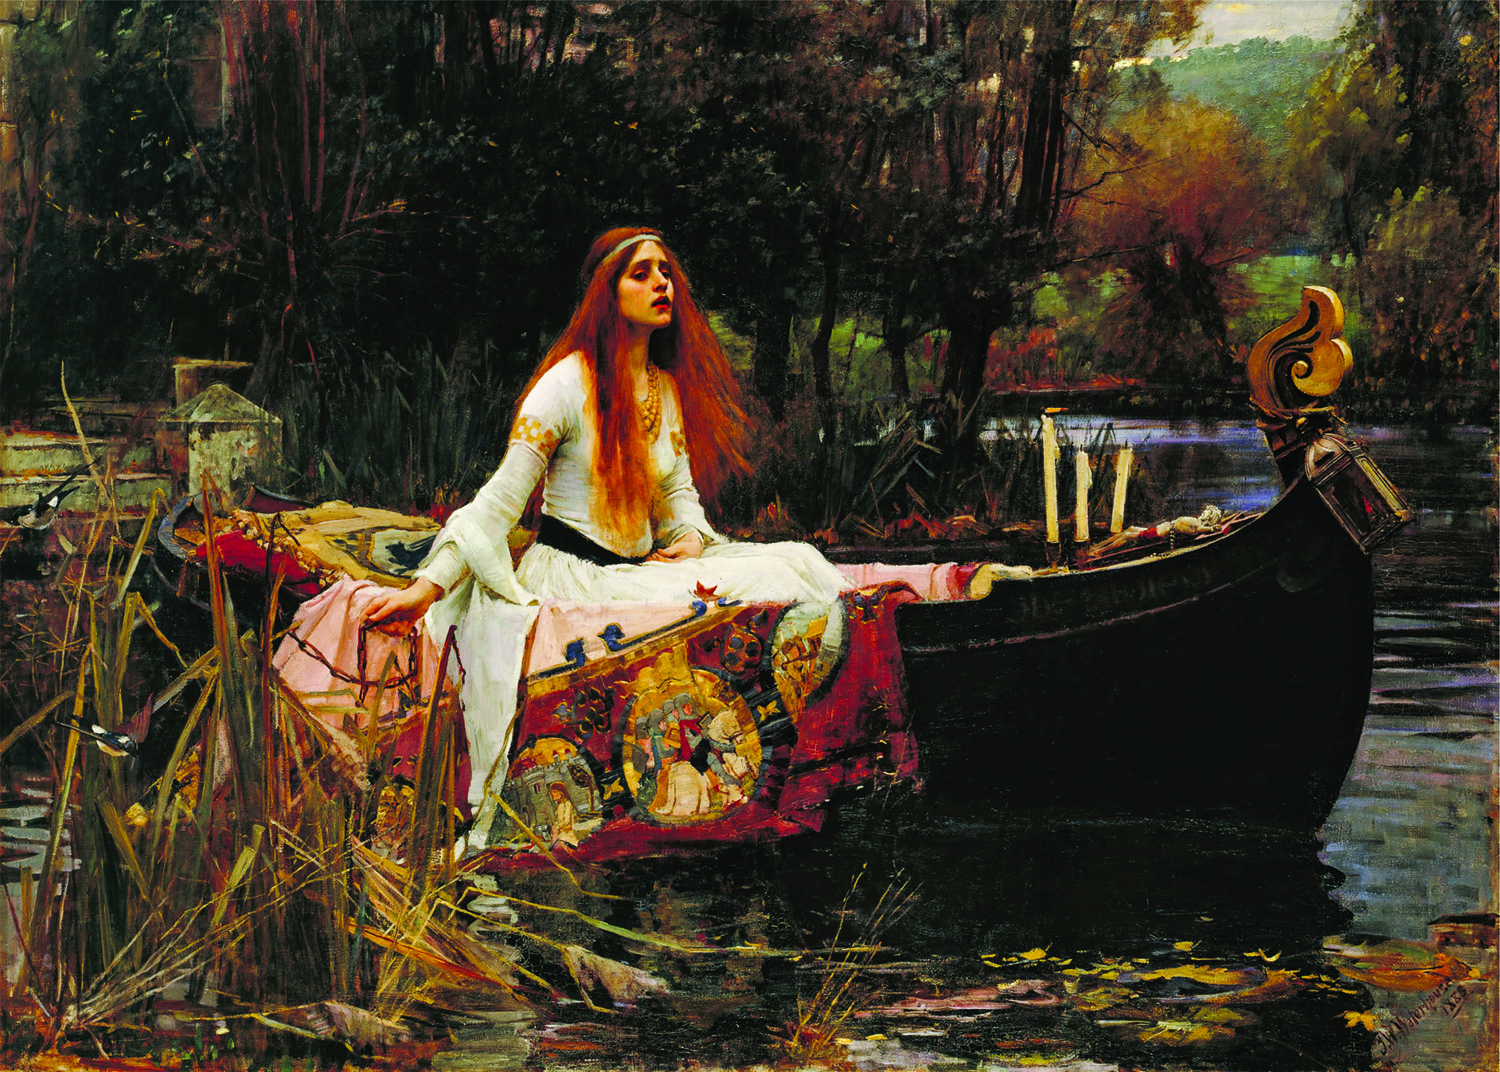 waterhouse-john-william-the-lady-of-shalott